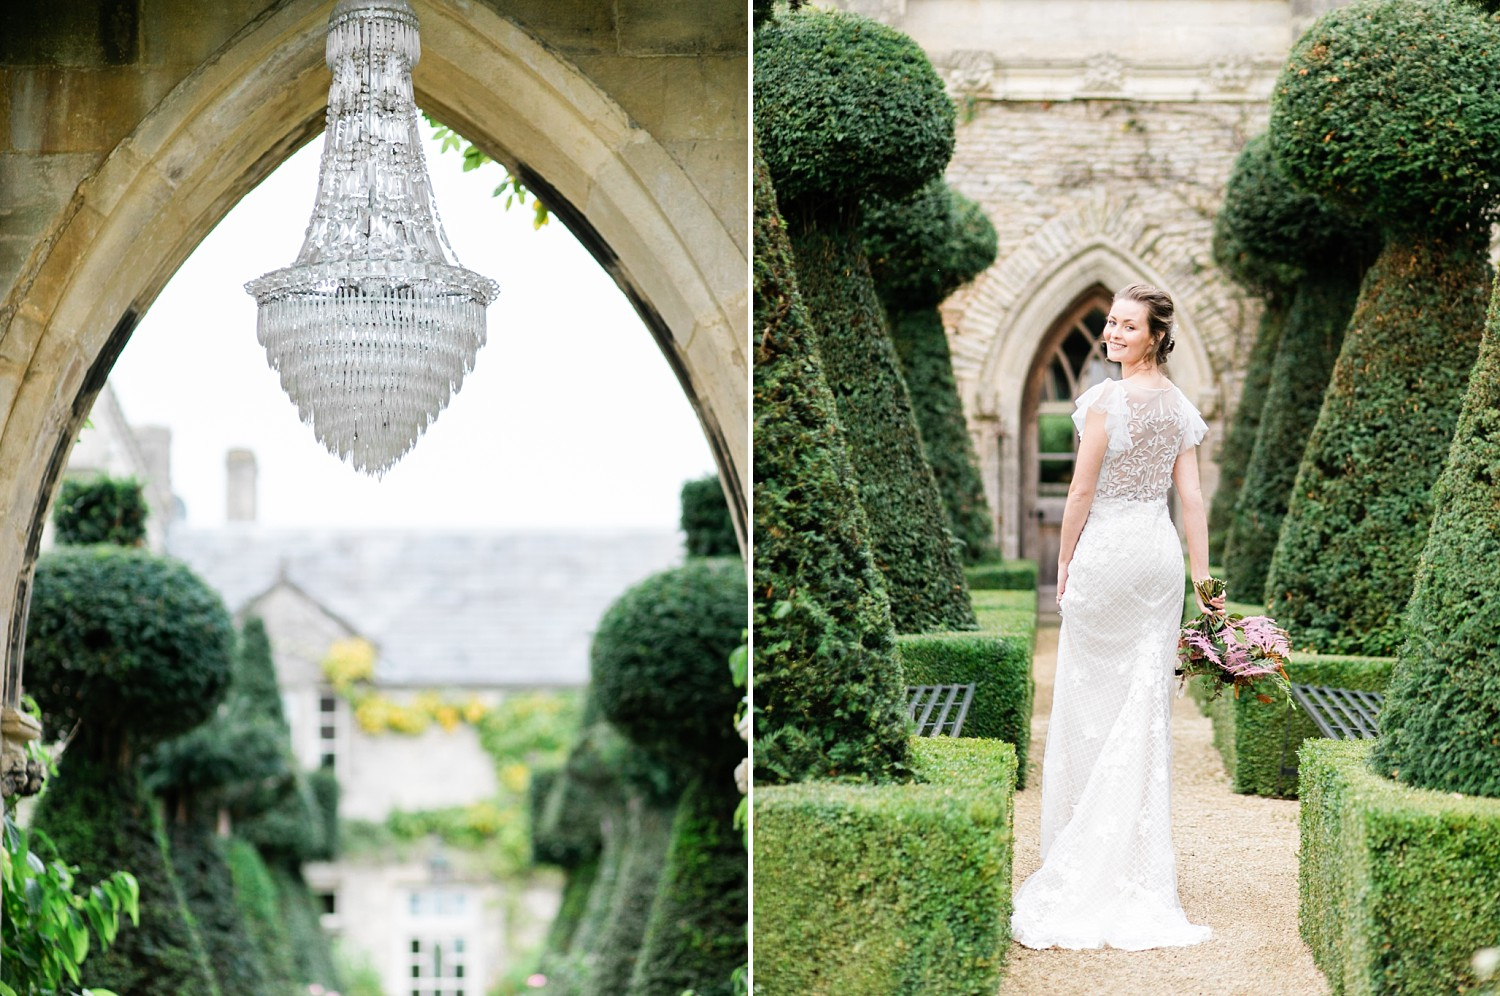 Bridal Inspiration at the Lost Orangery in the Cotswolds